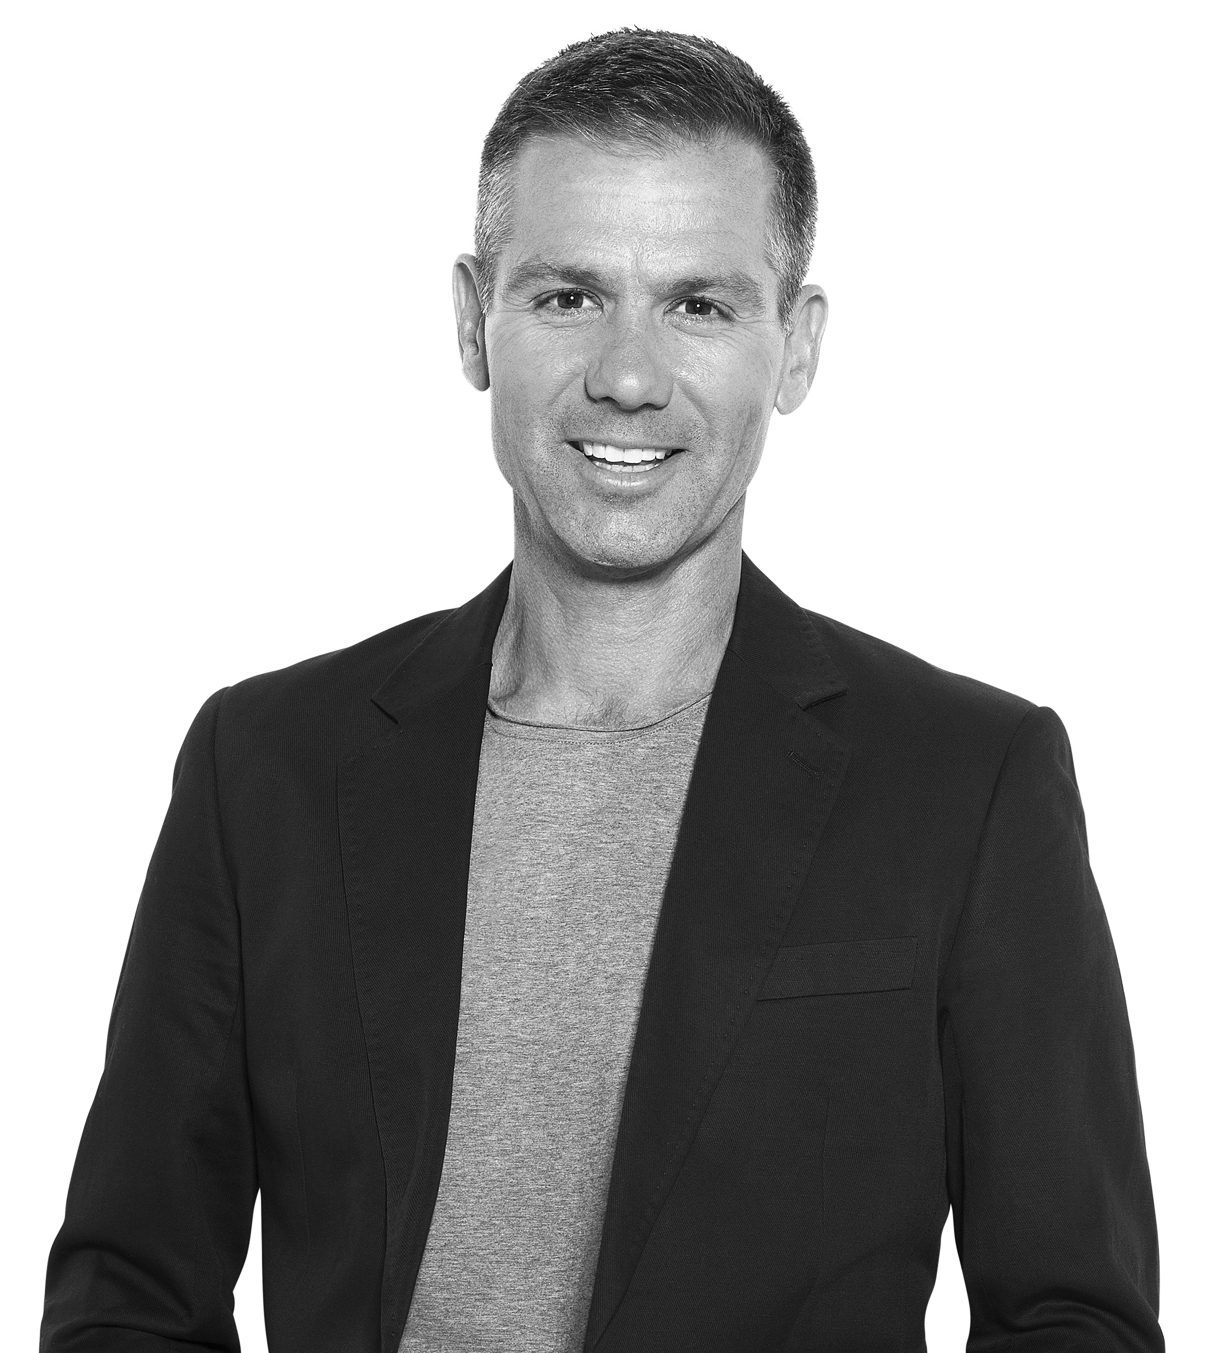 MATT TILLEY    CEO & Founder   27 years broadcasting on Melbourne FM radio - with over 14 years as number 1. Board member at McAuley Community Services for Women. Founder and CEO – Aussie Dollar Drop.